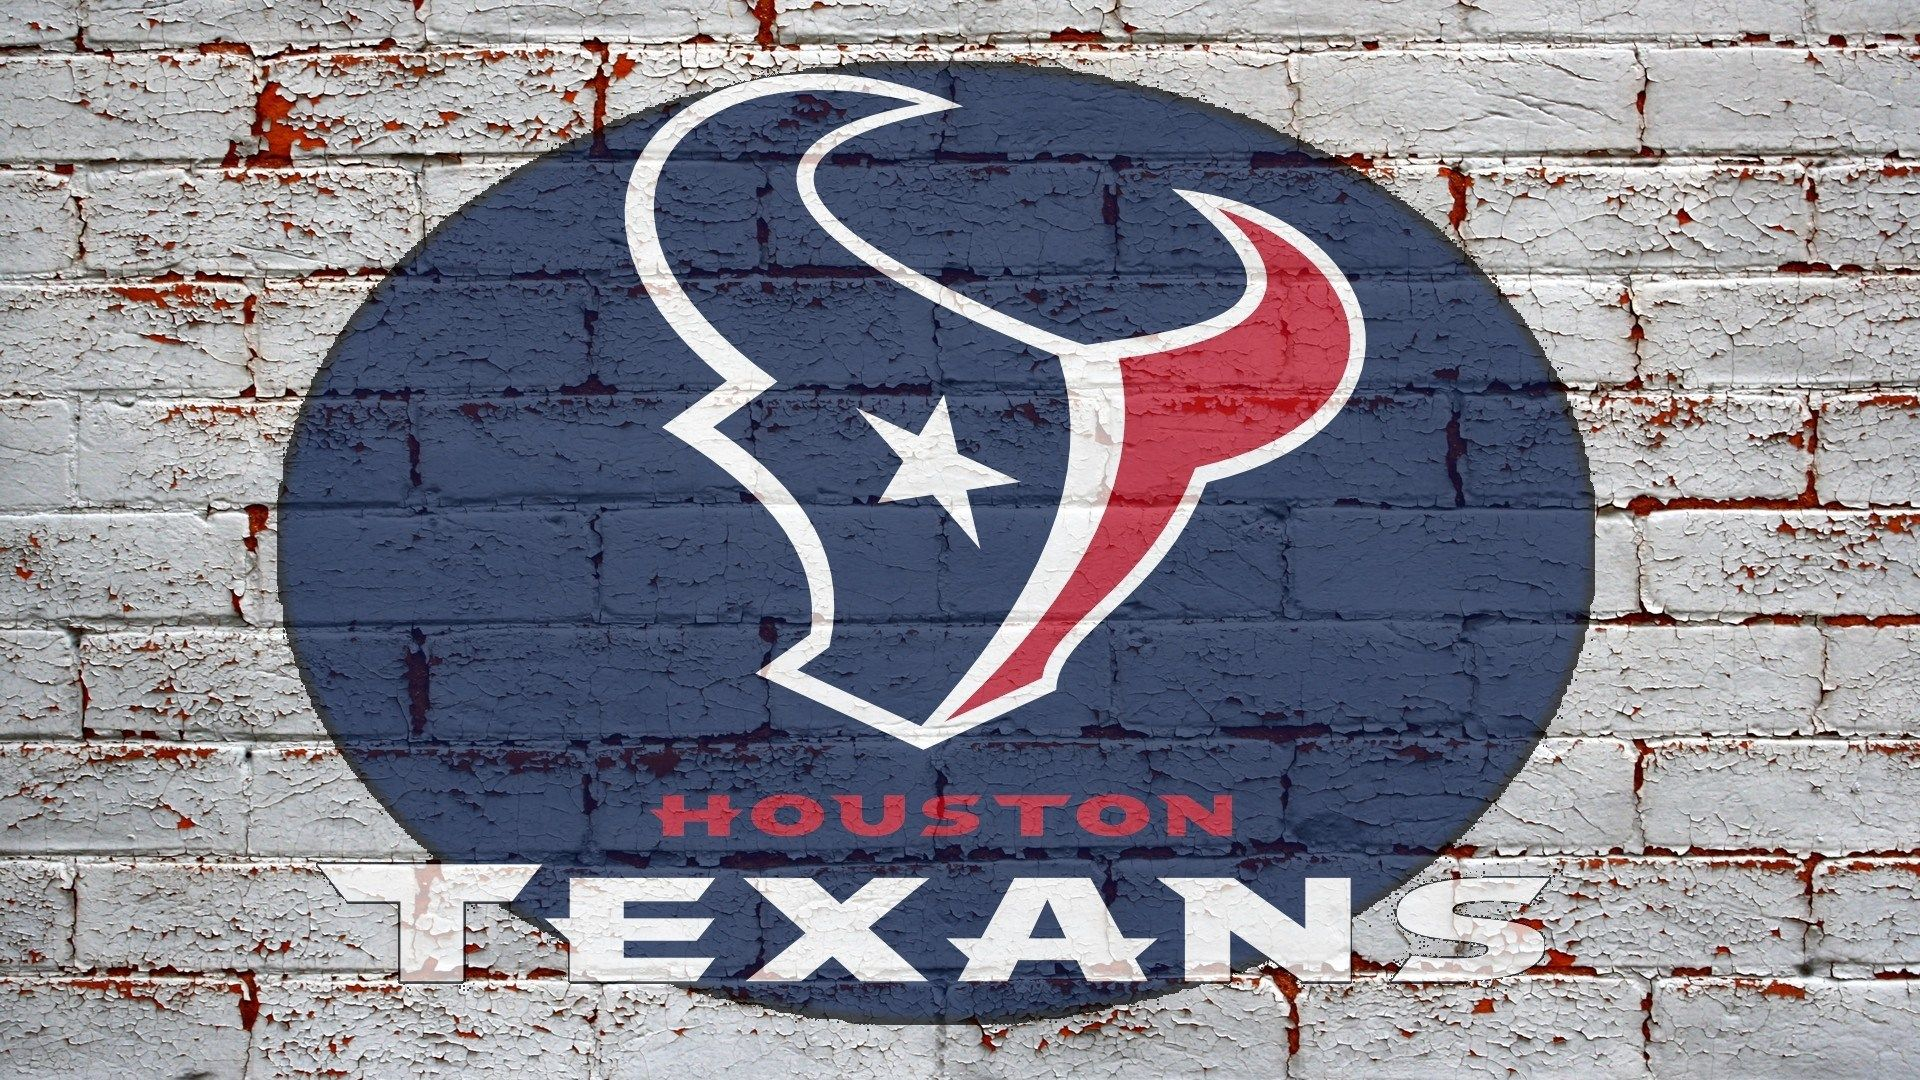 Pics photos houston texans logo chris creamer s sports - 1920 X 1080px Houston Texans Wallpaper Pack 1080p Hd By Cartwright Wilkinson